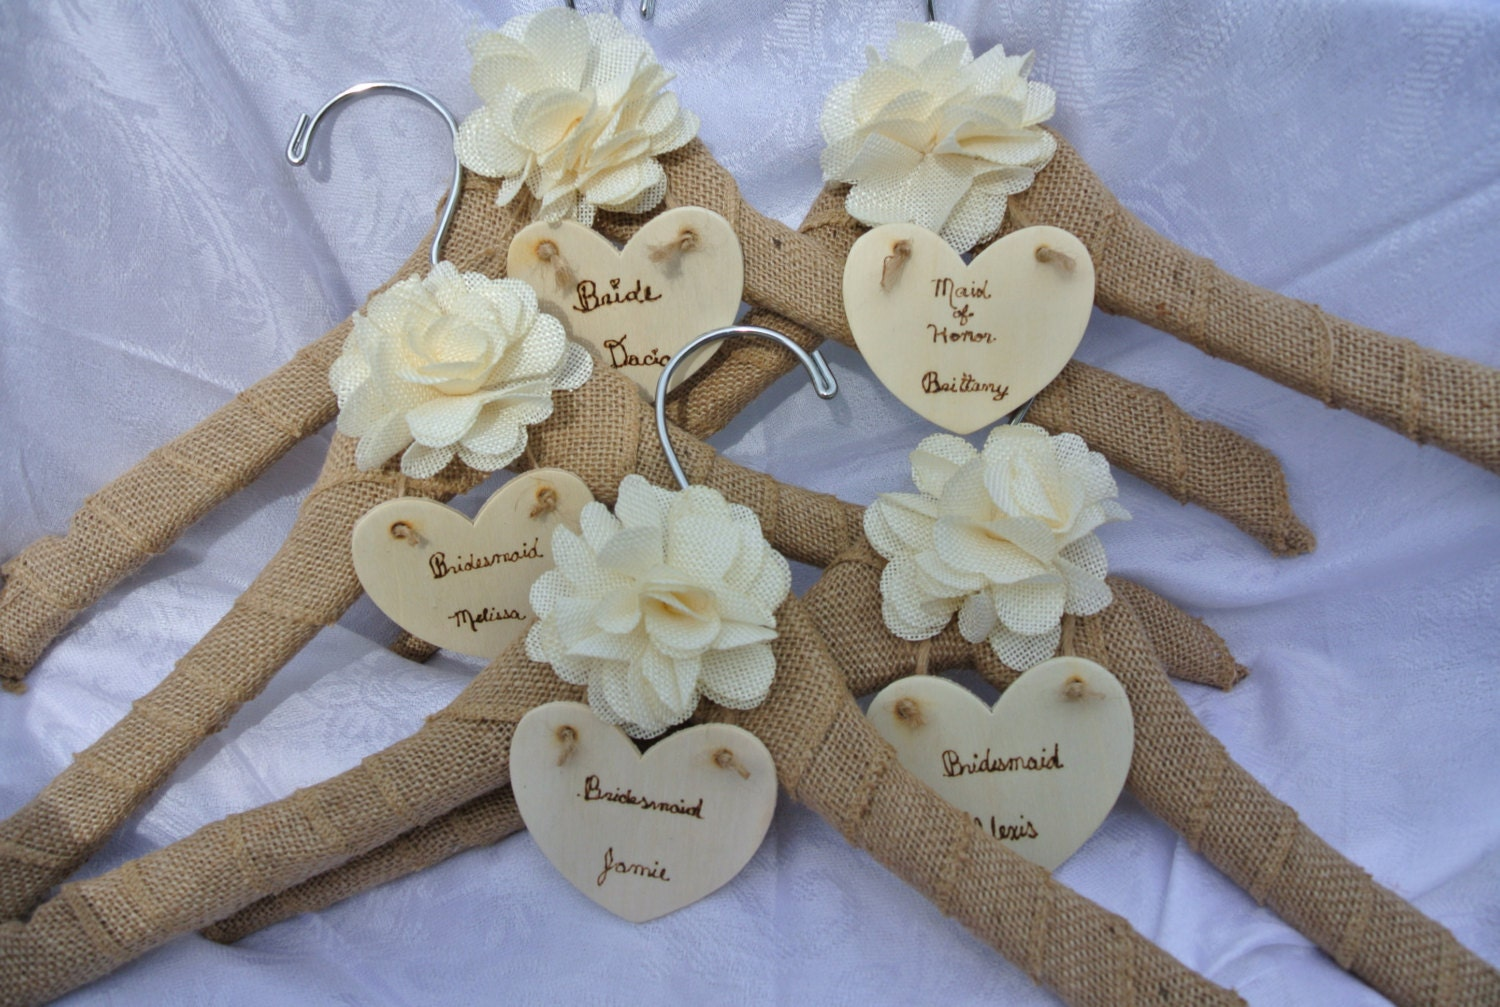 Name wedding dress hanger bridesmaids gifts rustic by jcbees for Wedding dress hanger amazon